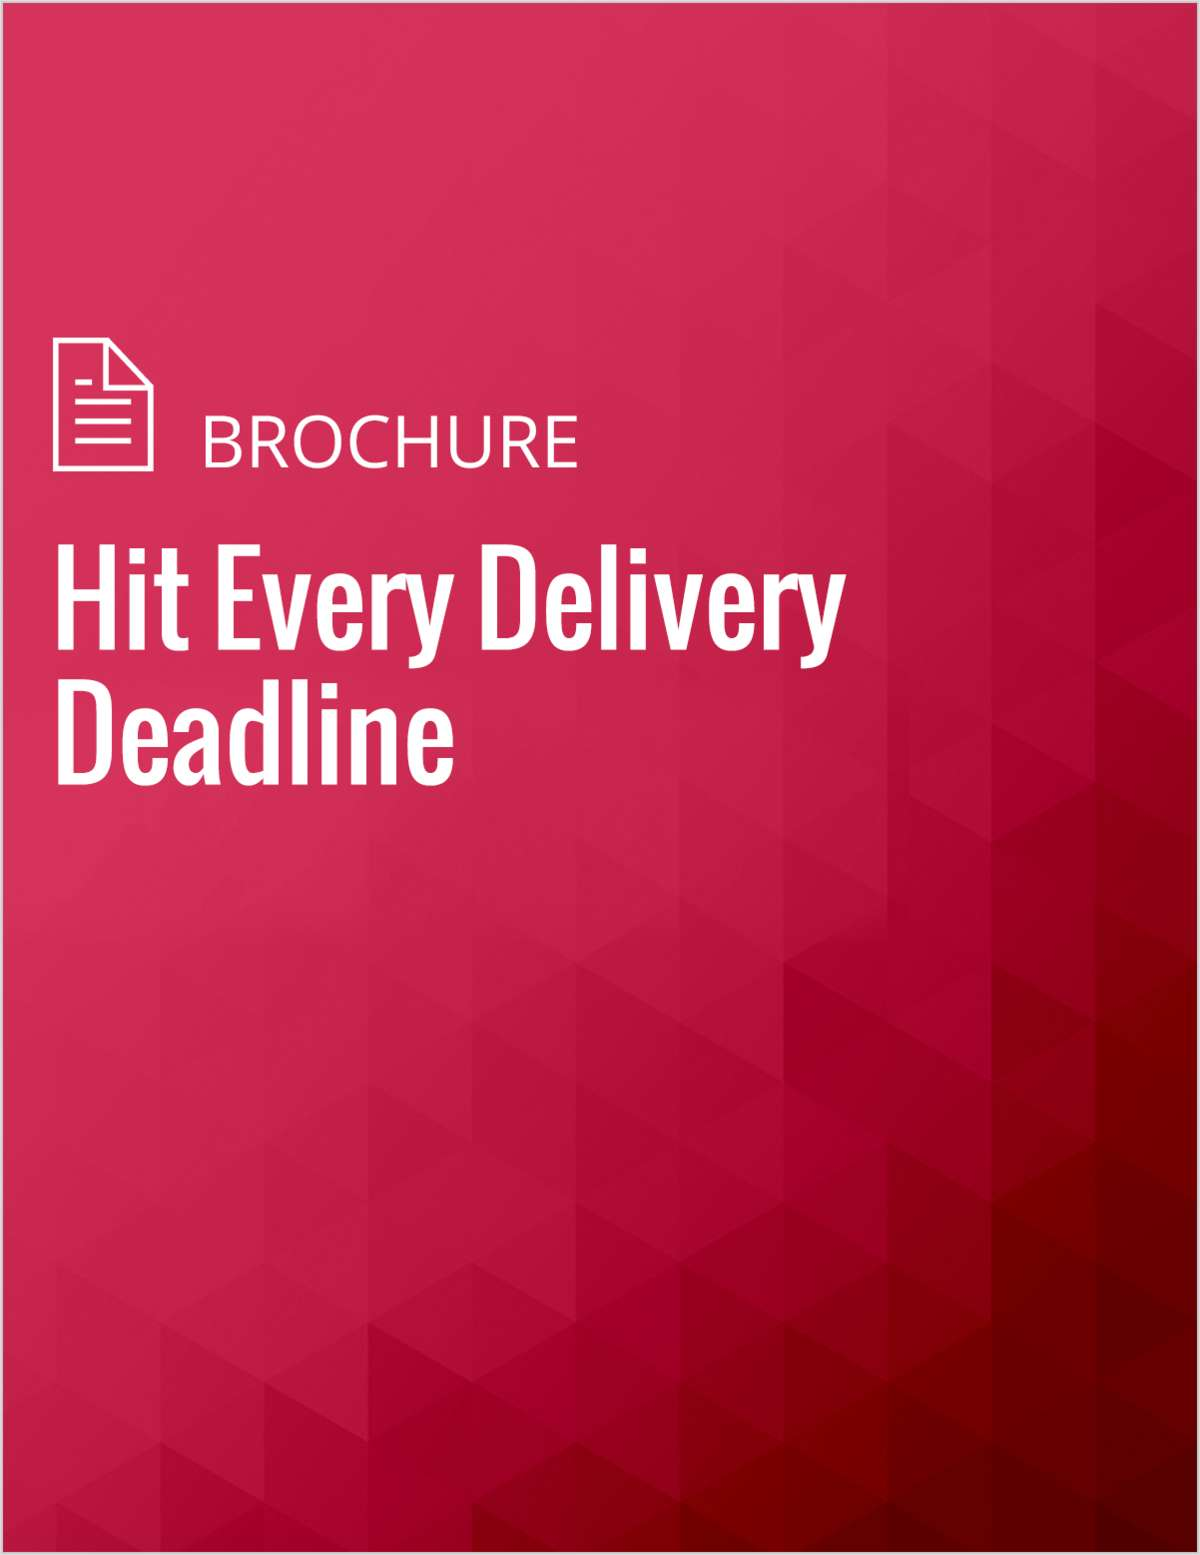 Hit Every Delivery Deadline